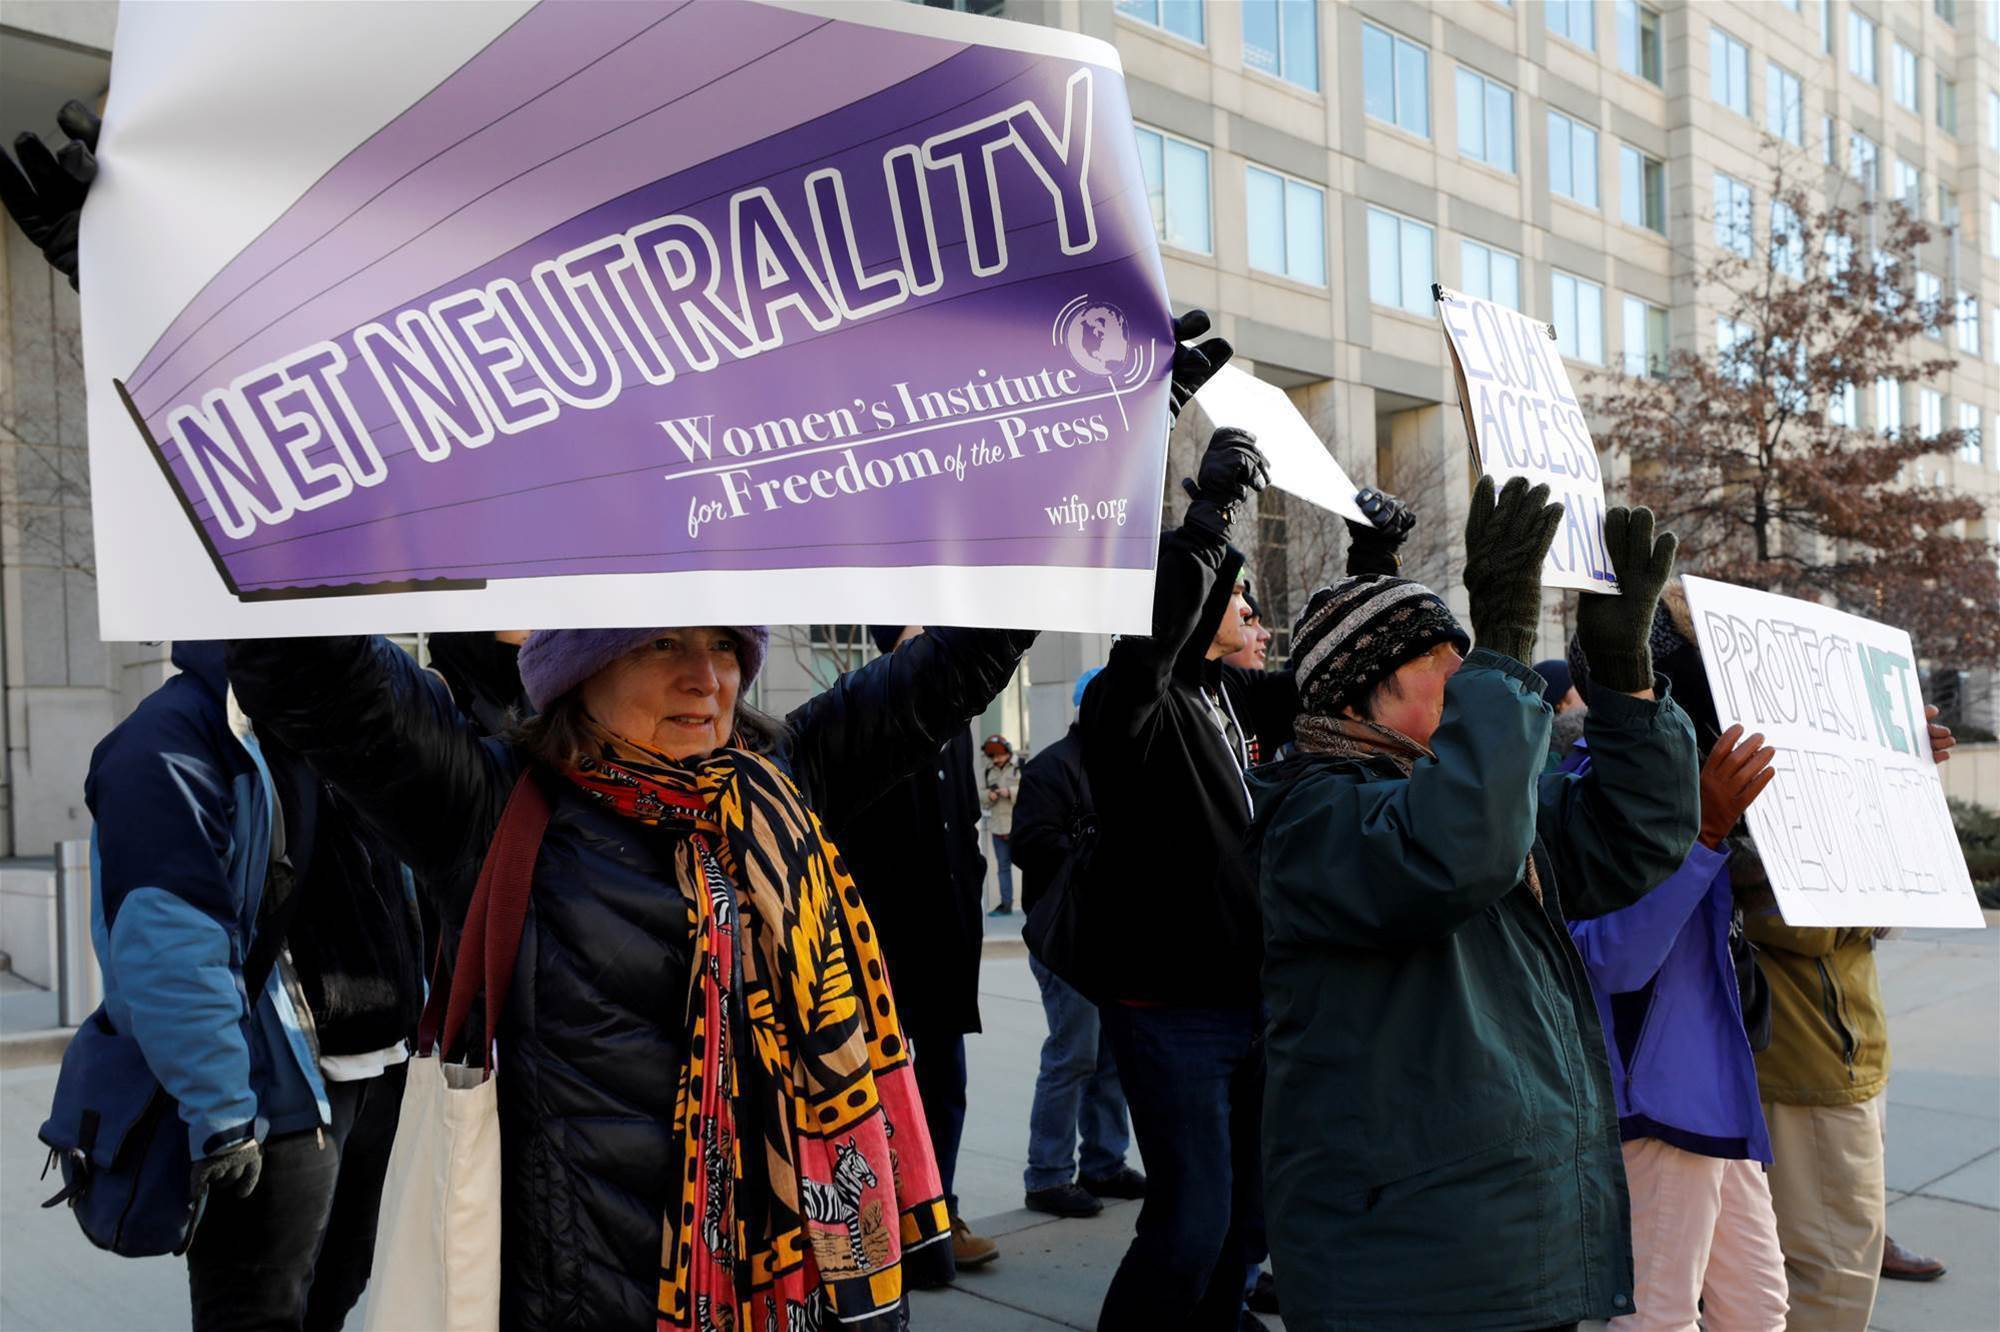 US regulator repeals net neutrality rules